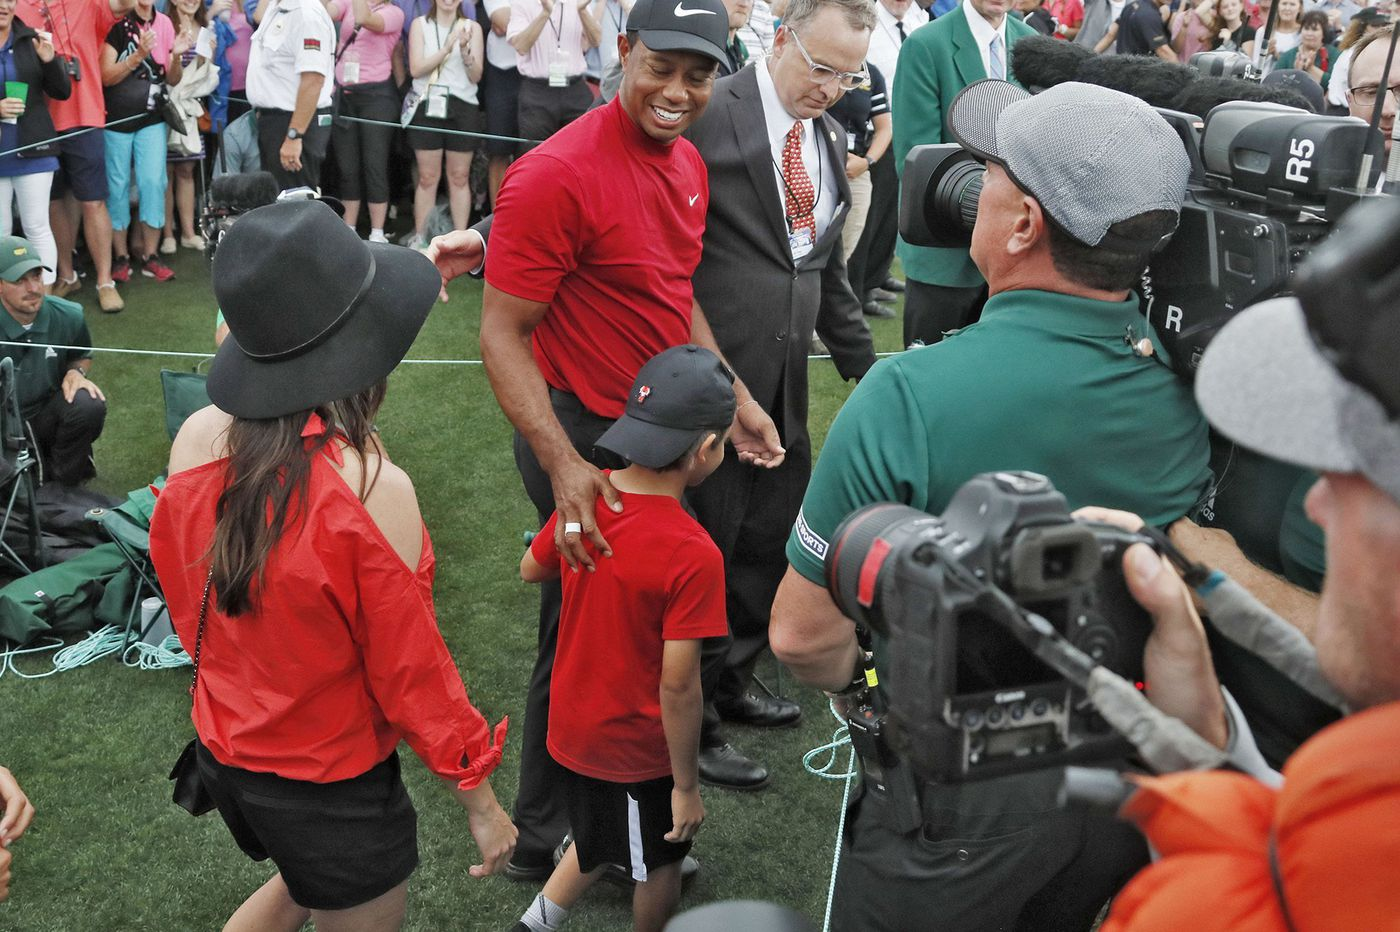 With Masters comeback, Tiger Woods gives golf another unforgettable moment and begins new chapter